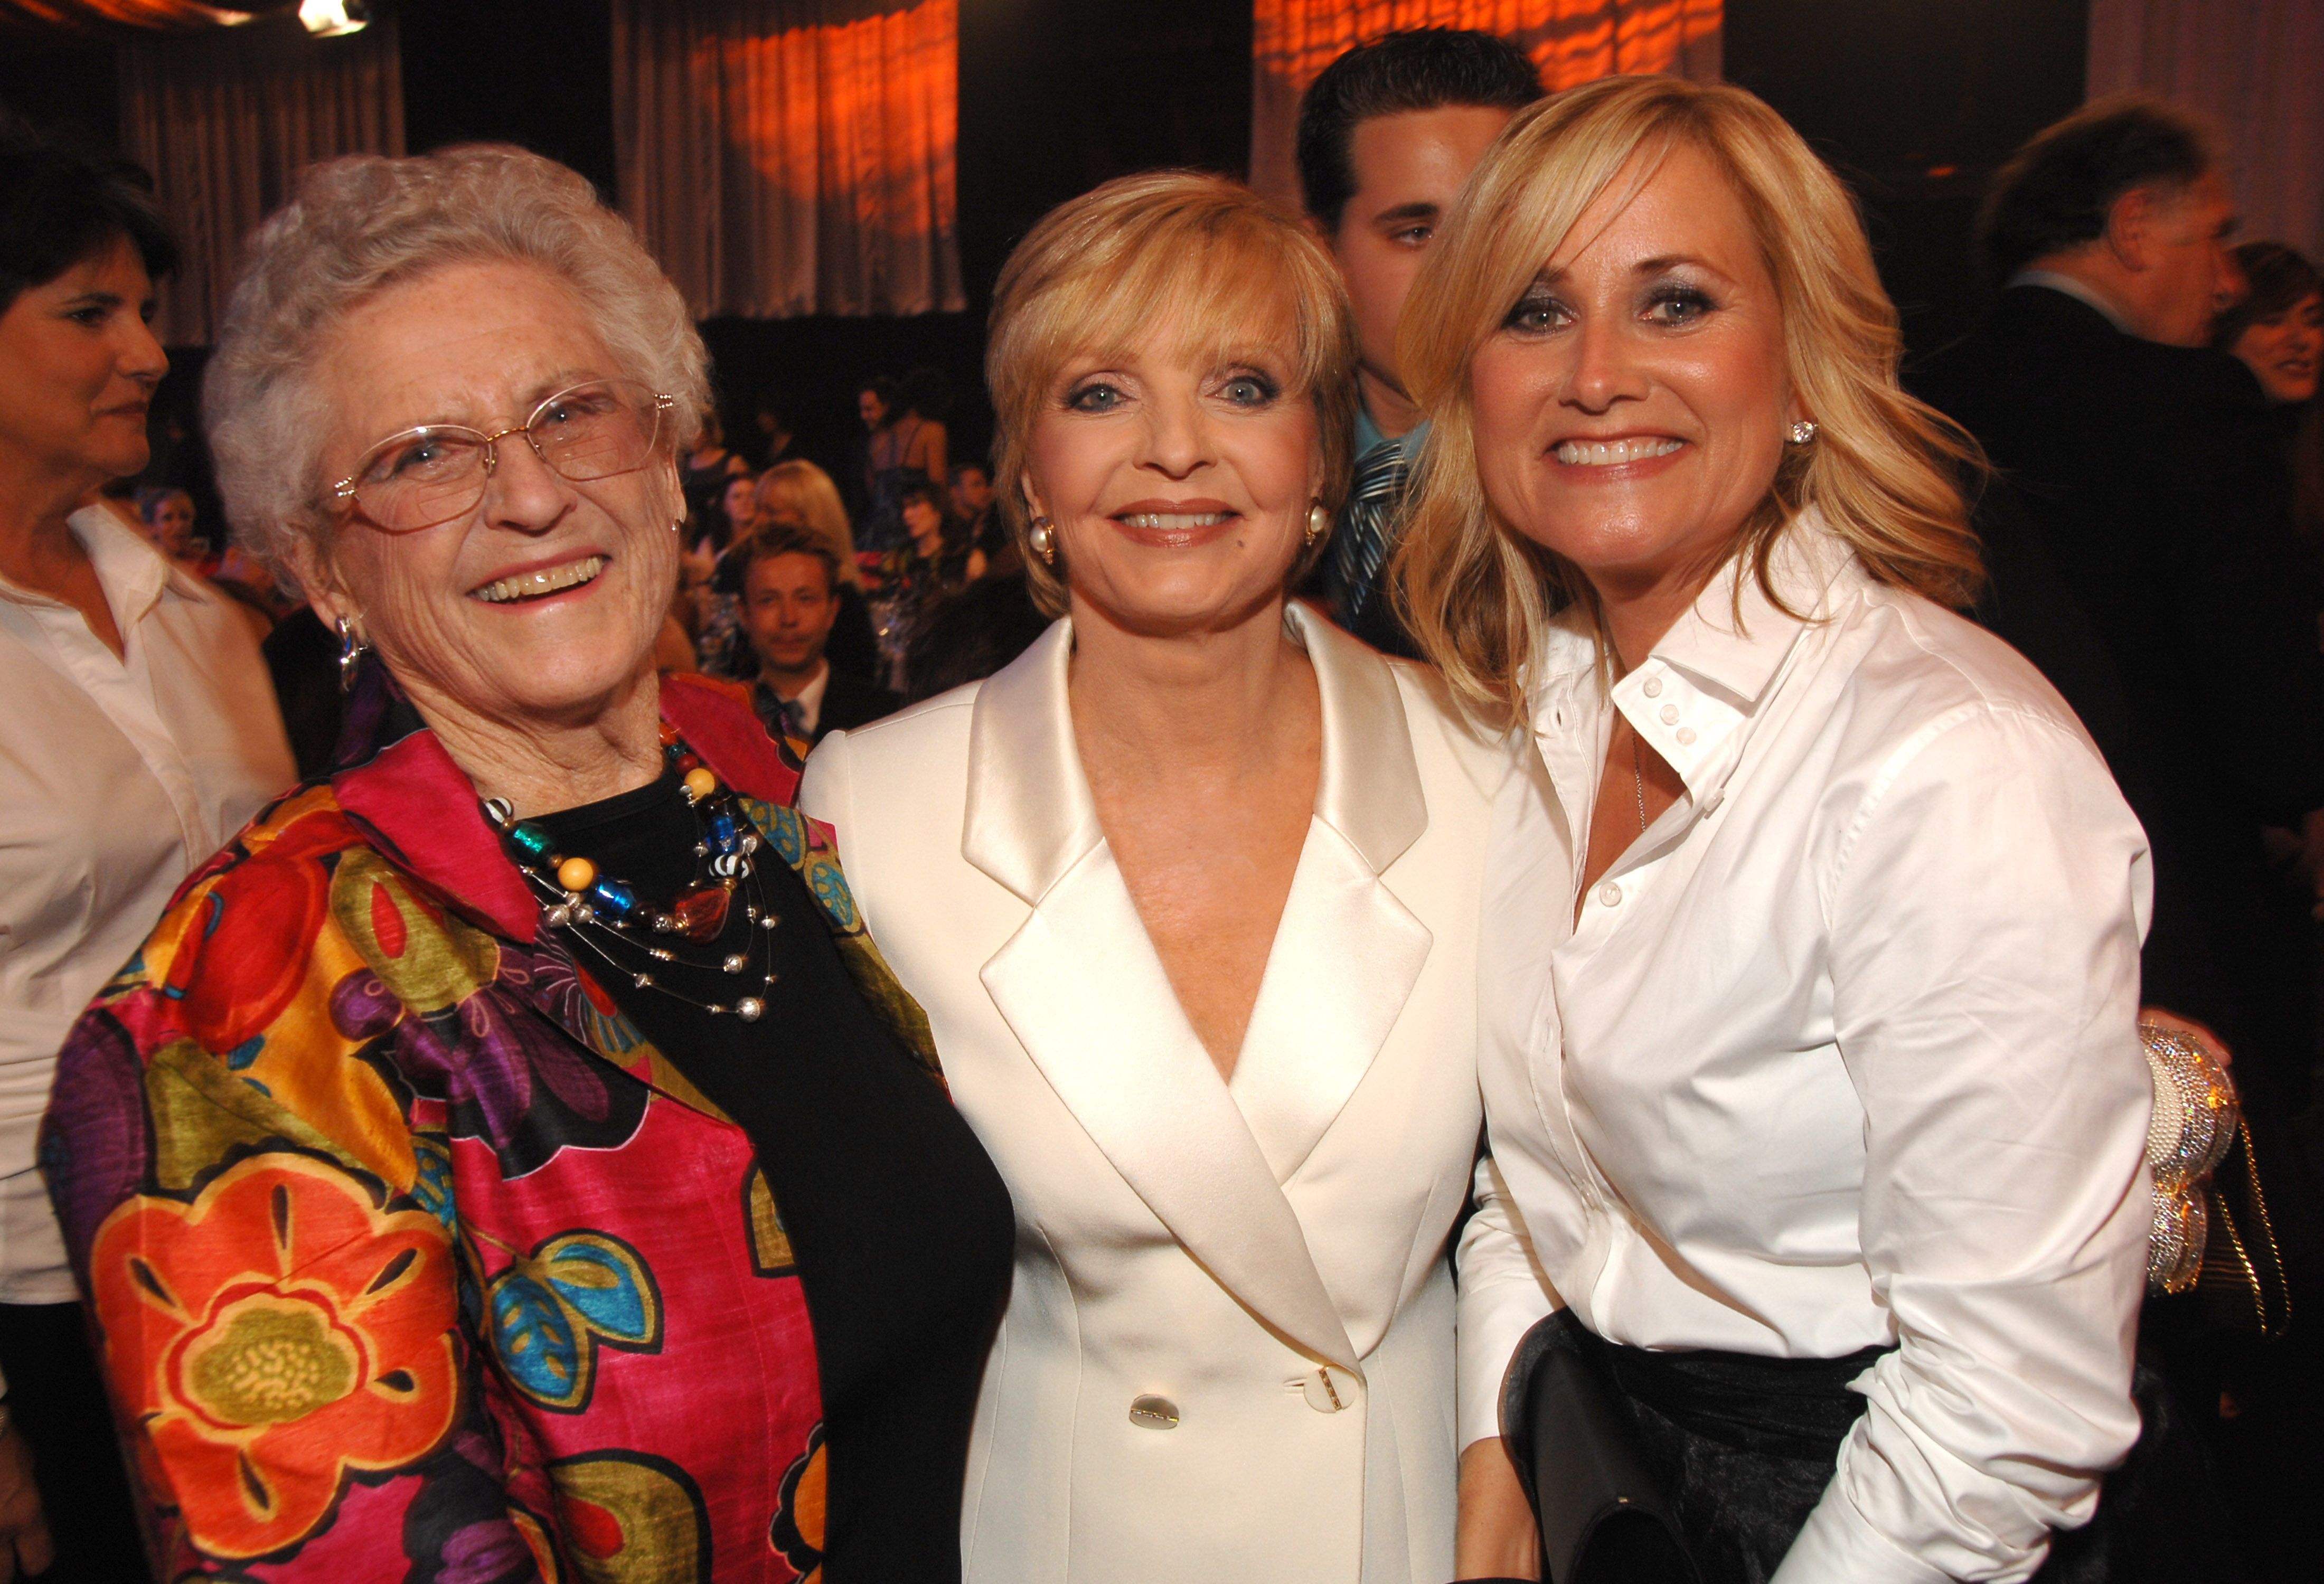 'The Brady Bunch' got together one more time for Florence Henderson because TV families are forever